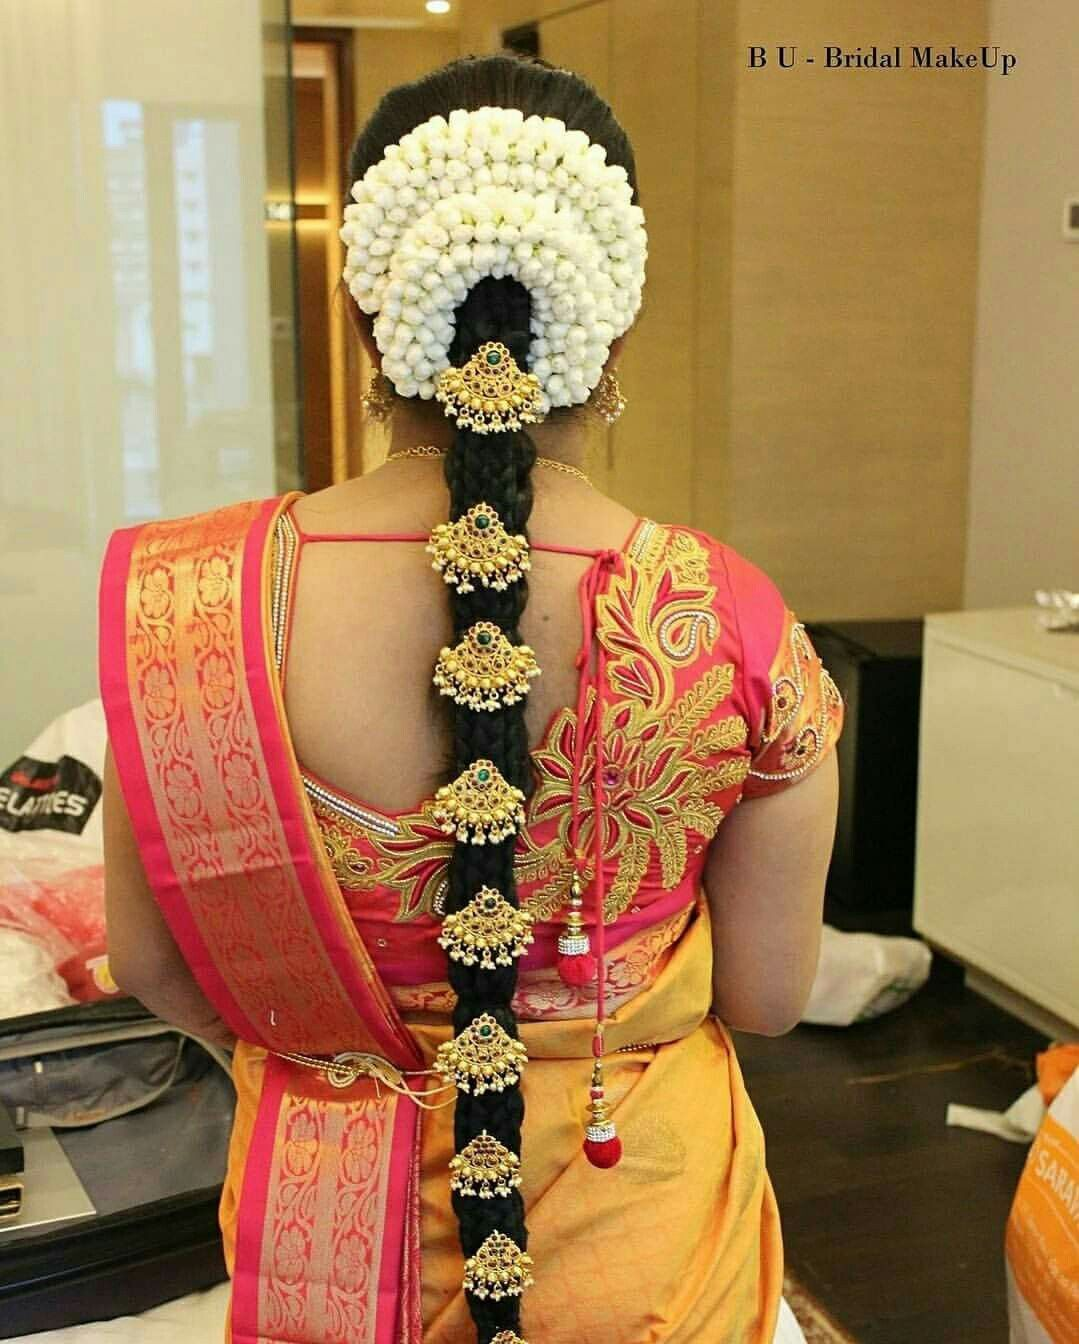 Wedding Hairstyles Traditional Celebrity Pinbeeshma Acharya On South Indian Wedding Bri In 2020 Indian Bride Hairstyle South Indian Bride Hairstyle Indian Hairstyles